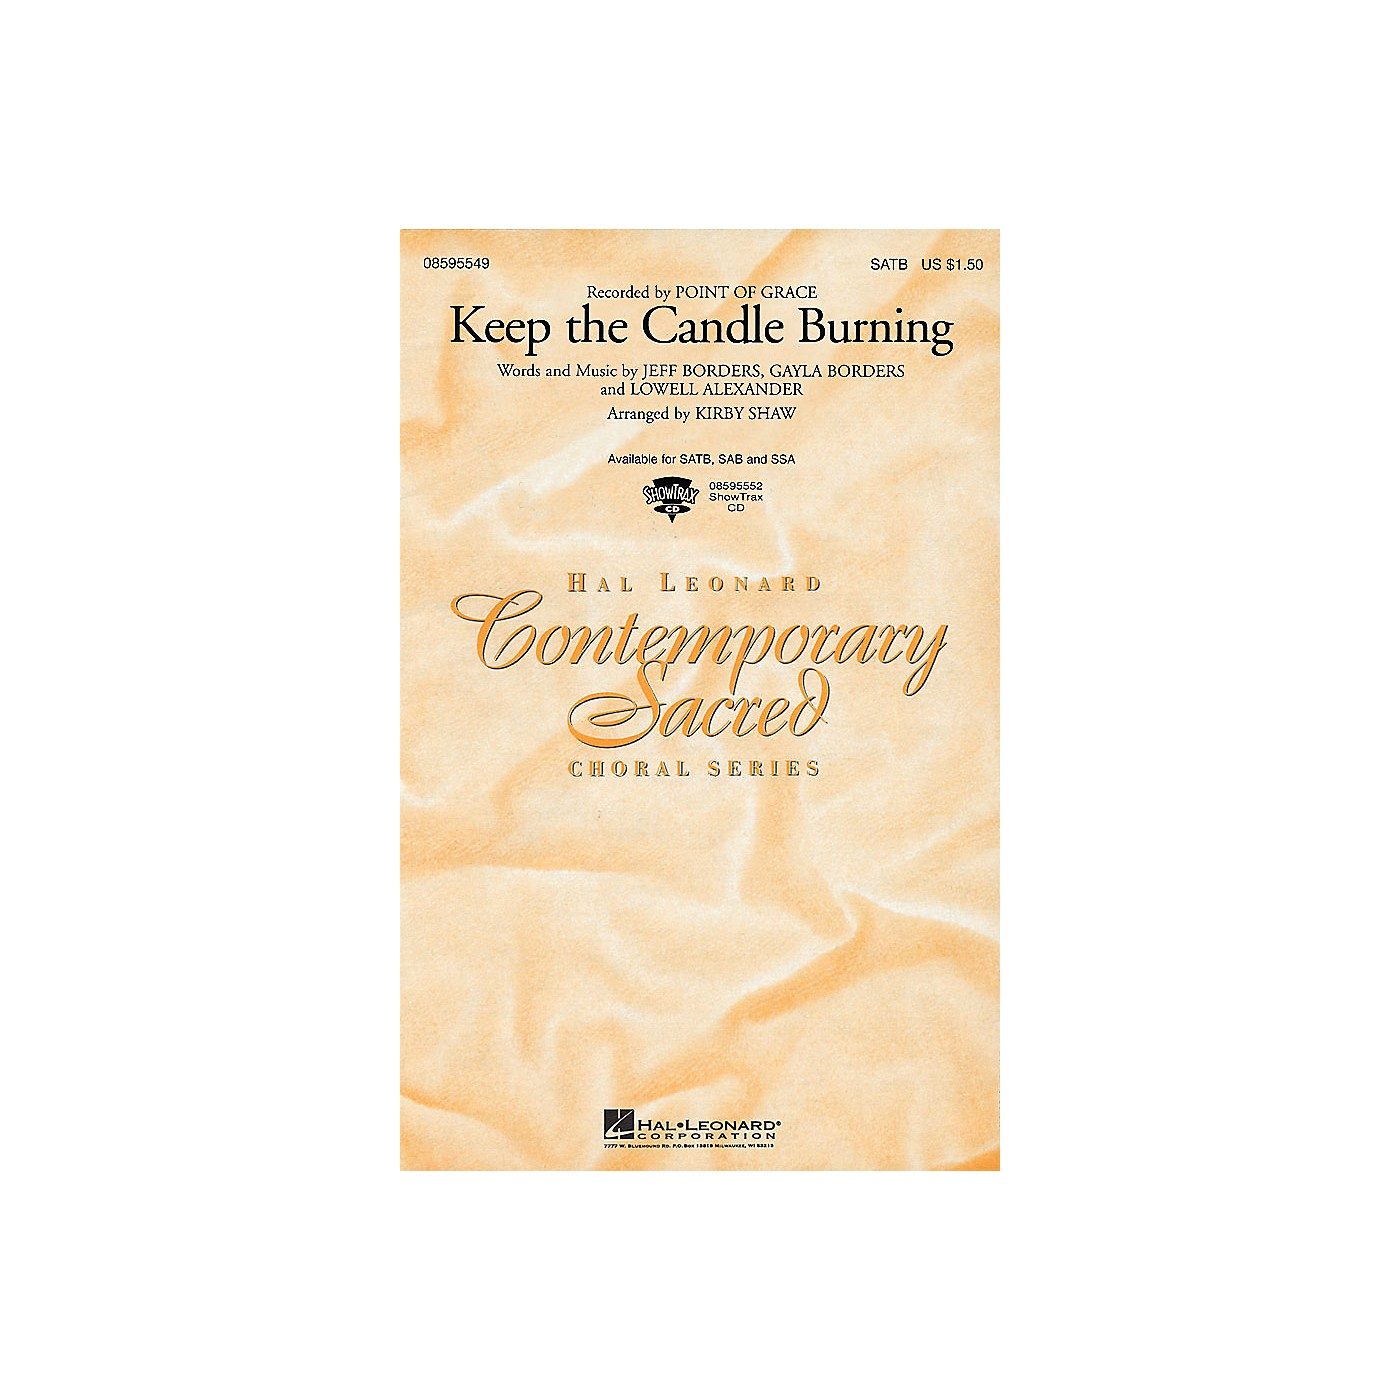 Hal Leonard Keep the Candle Burning SAB by Point Of Grace Arranged by Kirby Shaw thumbnail